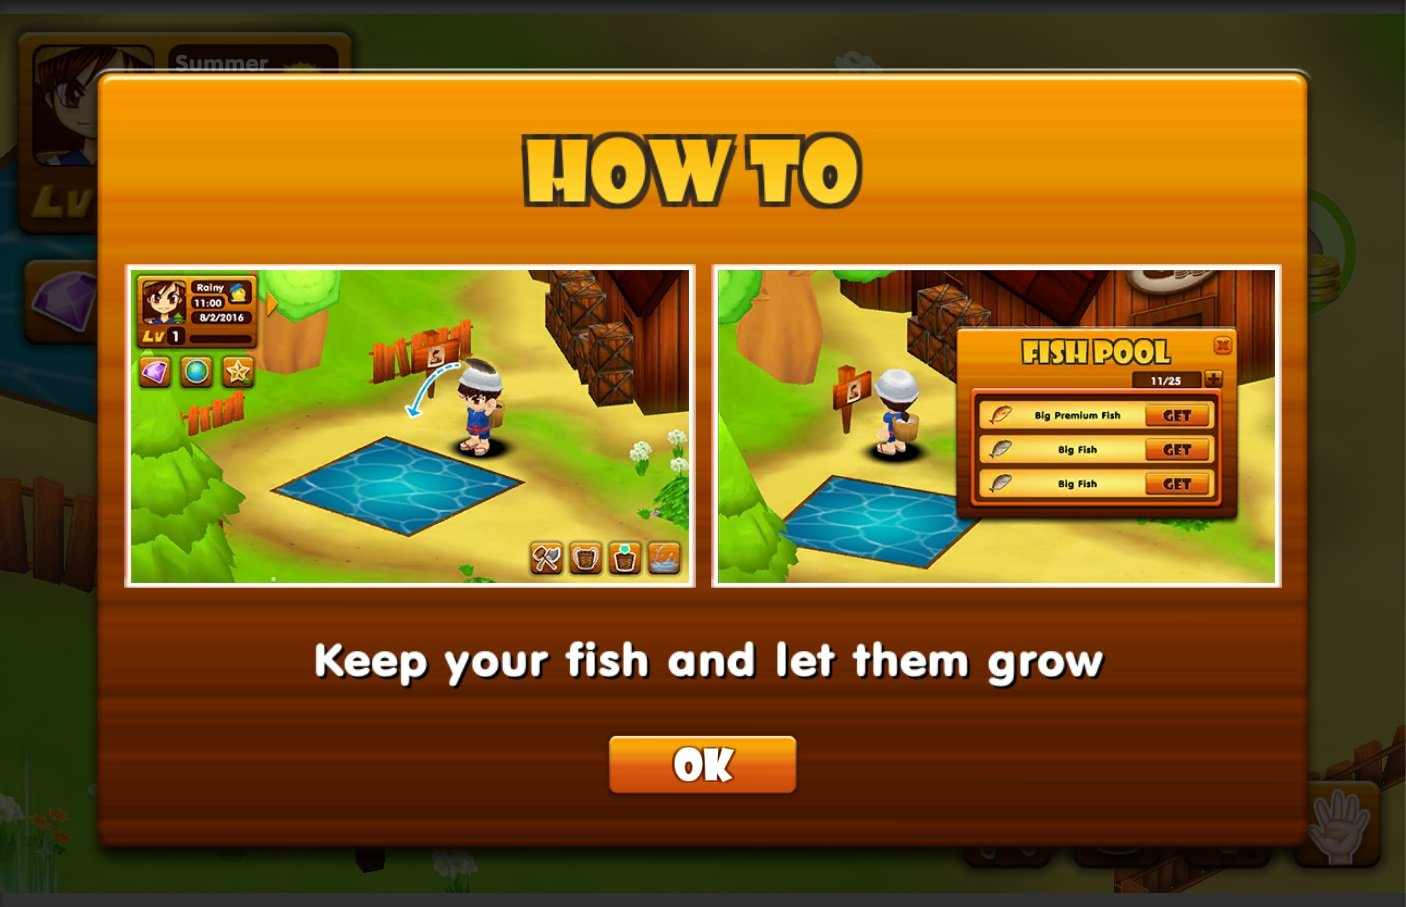 Fish pond is now available